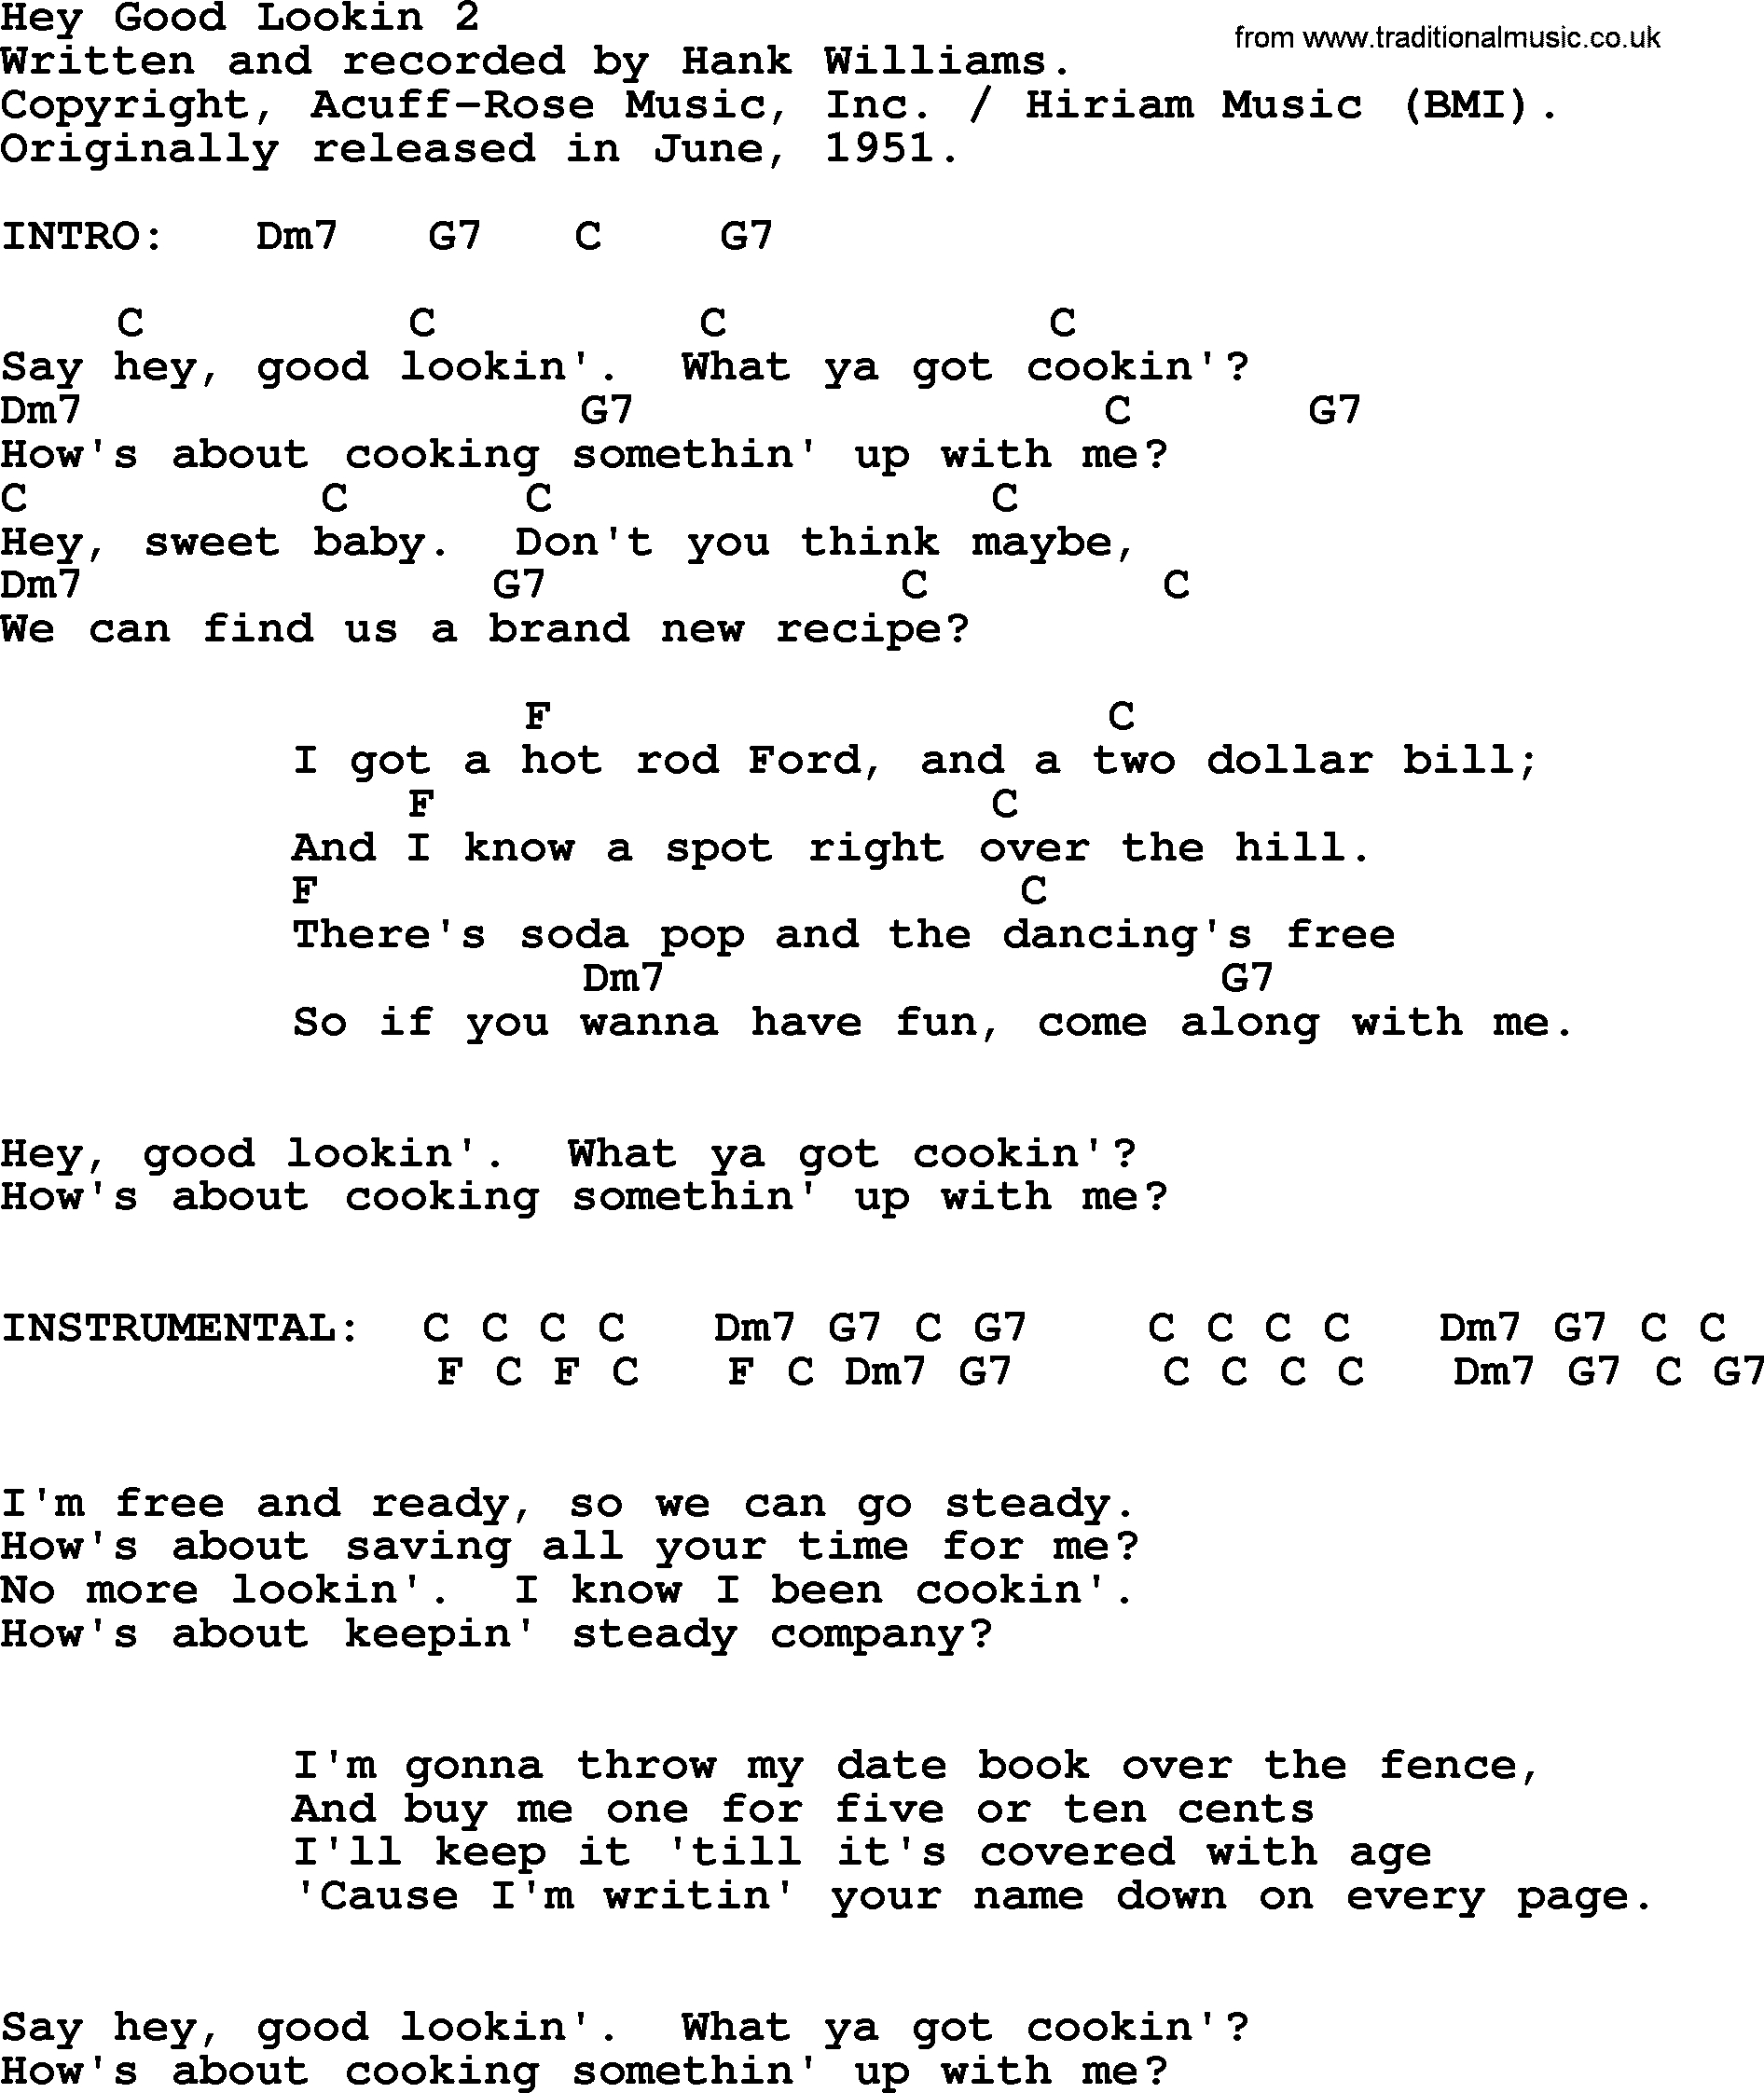 Hey Ya Chords Hank Williams Song Hey Good Lookin 2 Lyrics And Chords